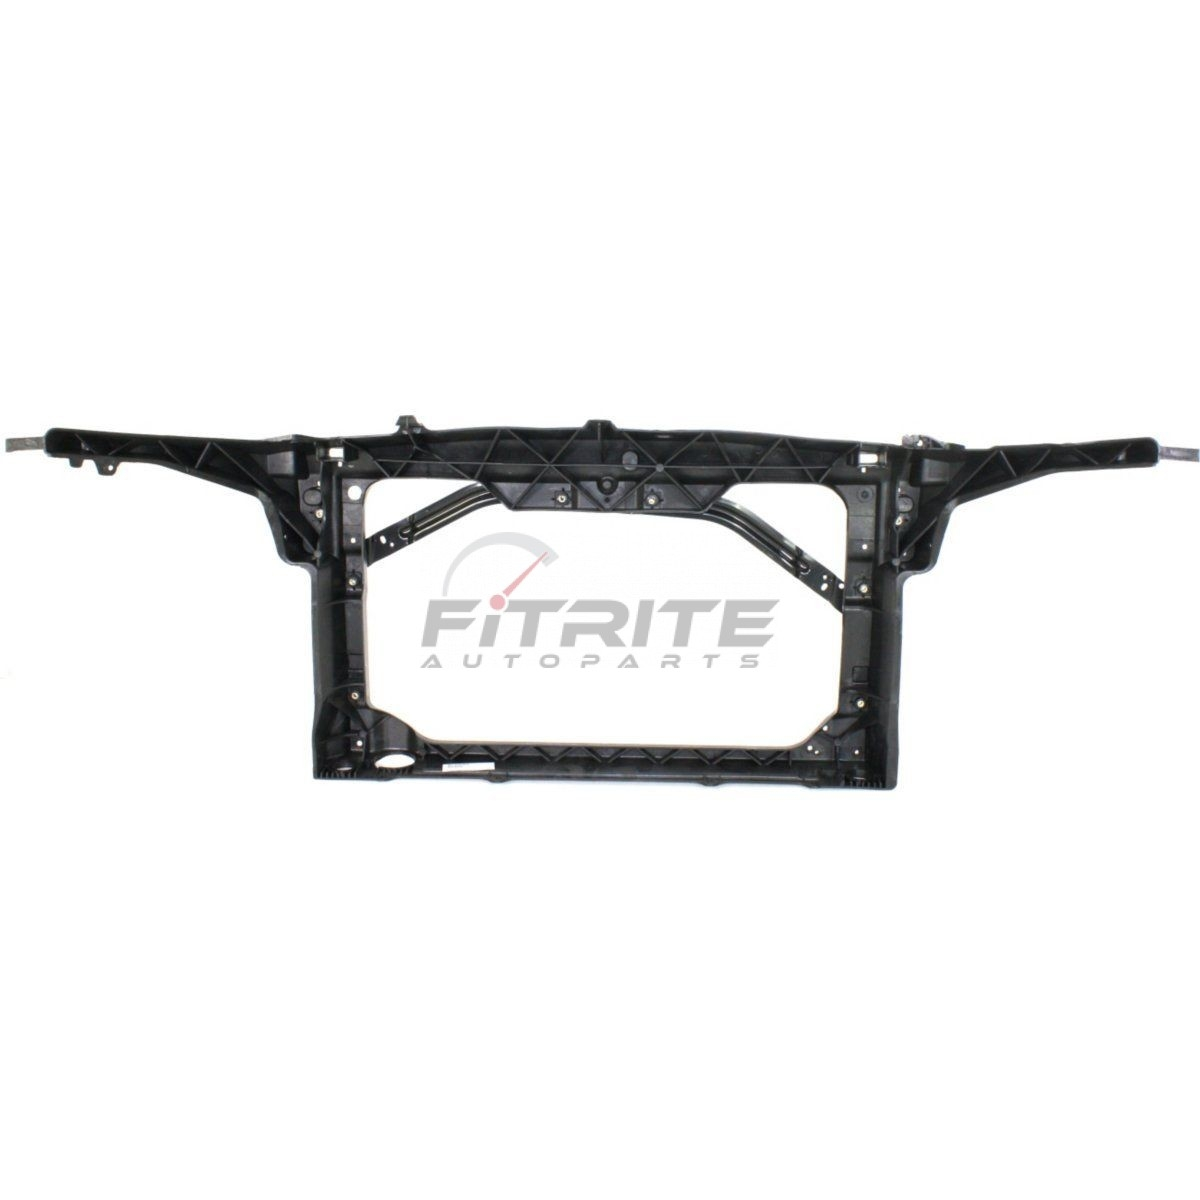 NEW RADIATOR SUPPORT ASSEMBLY FOR 2010-2012 FORD FUSION